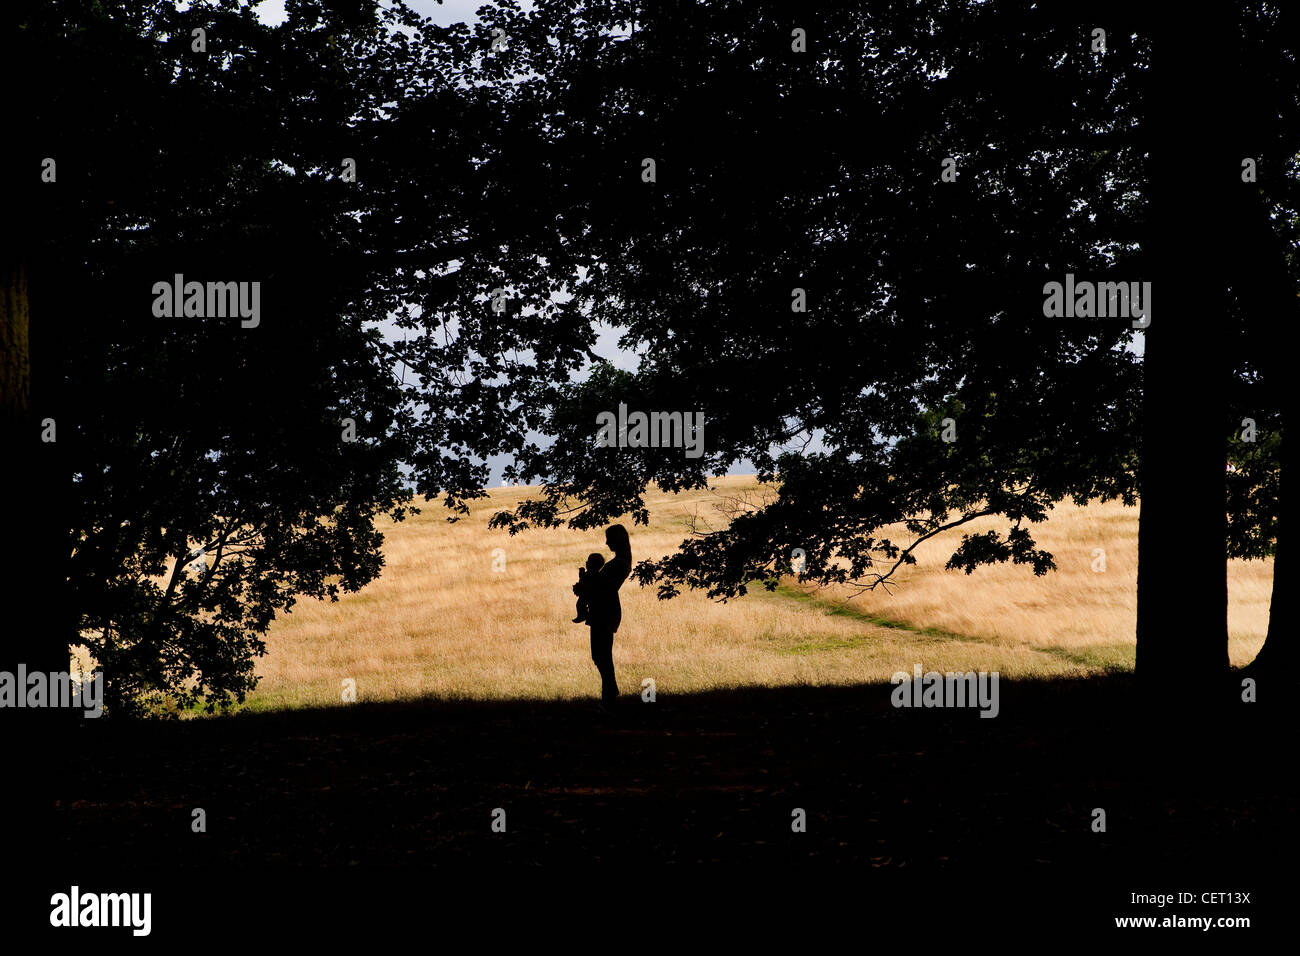 Mother & child in Silhouette on Hampstead Heath, London - Stock Image